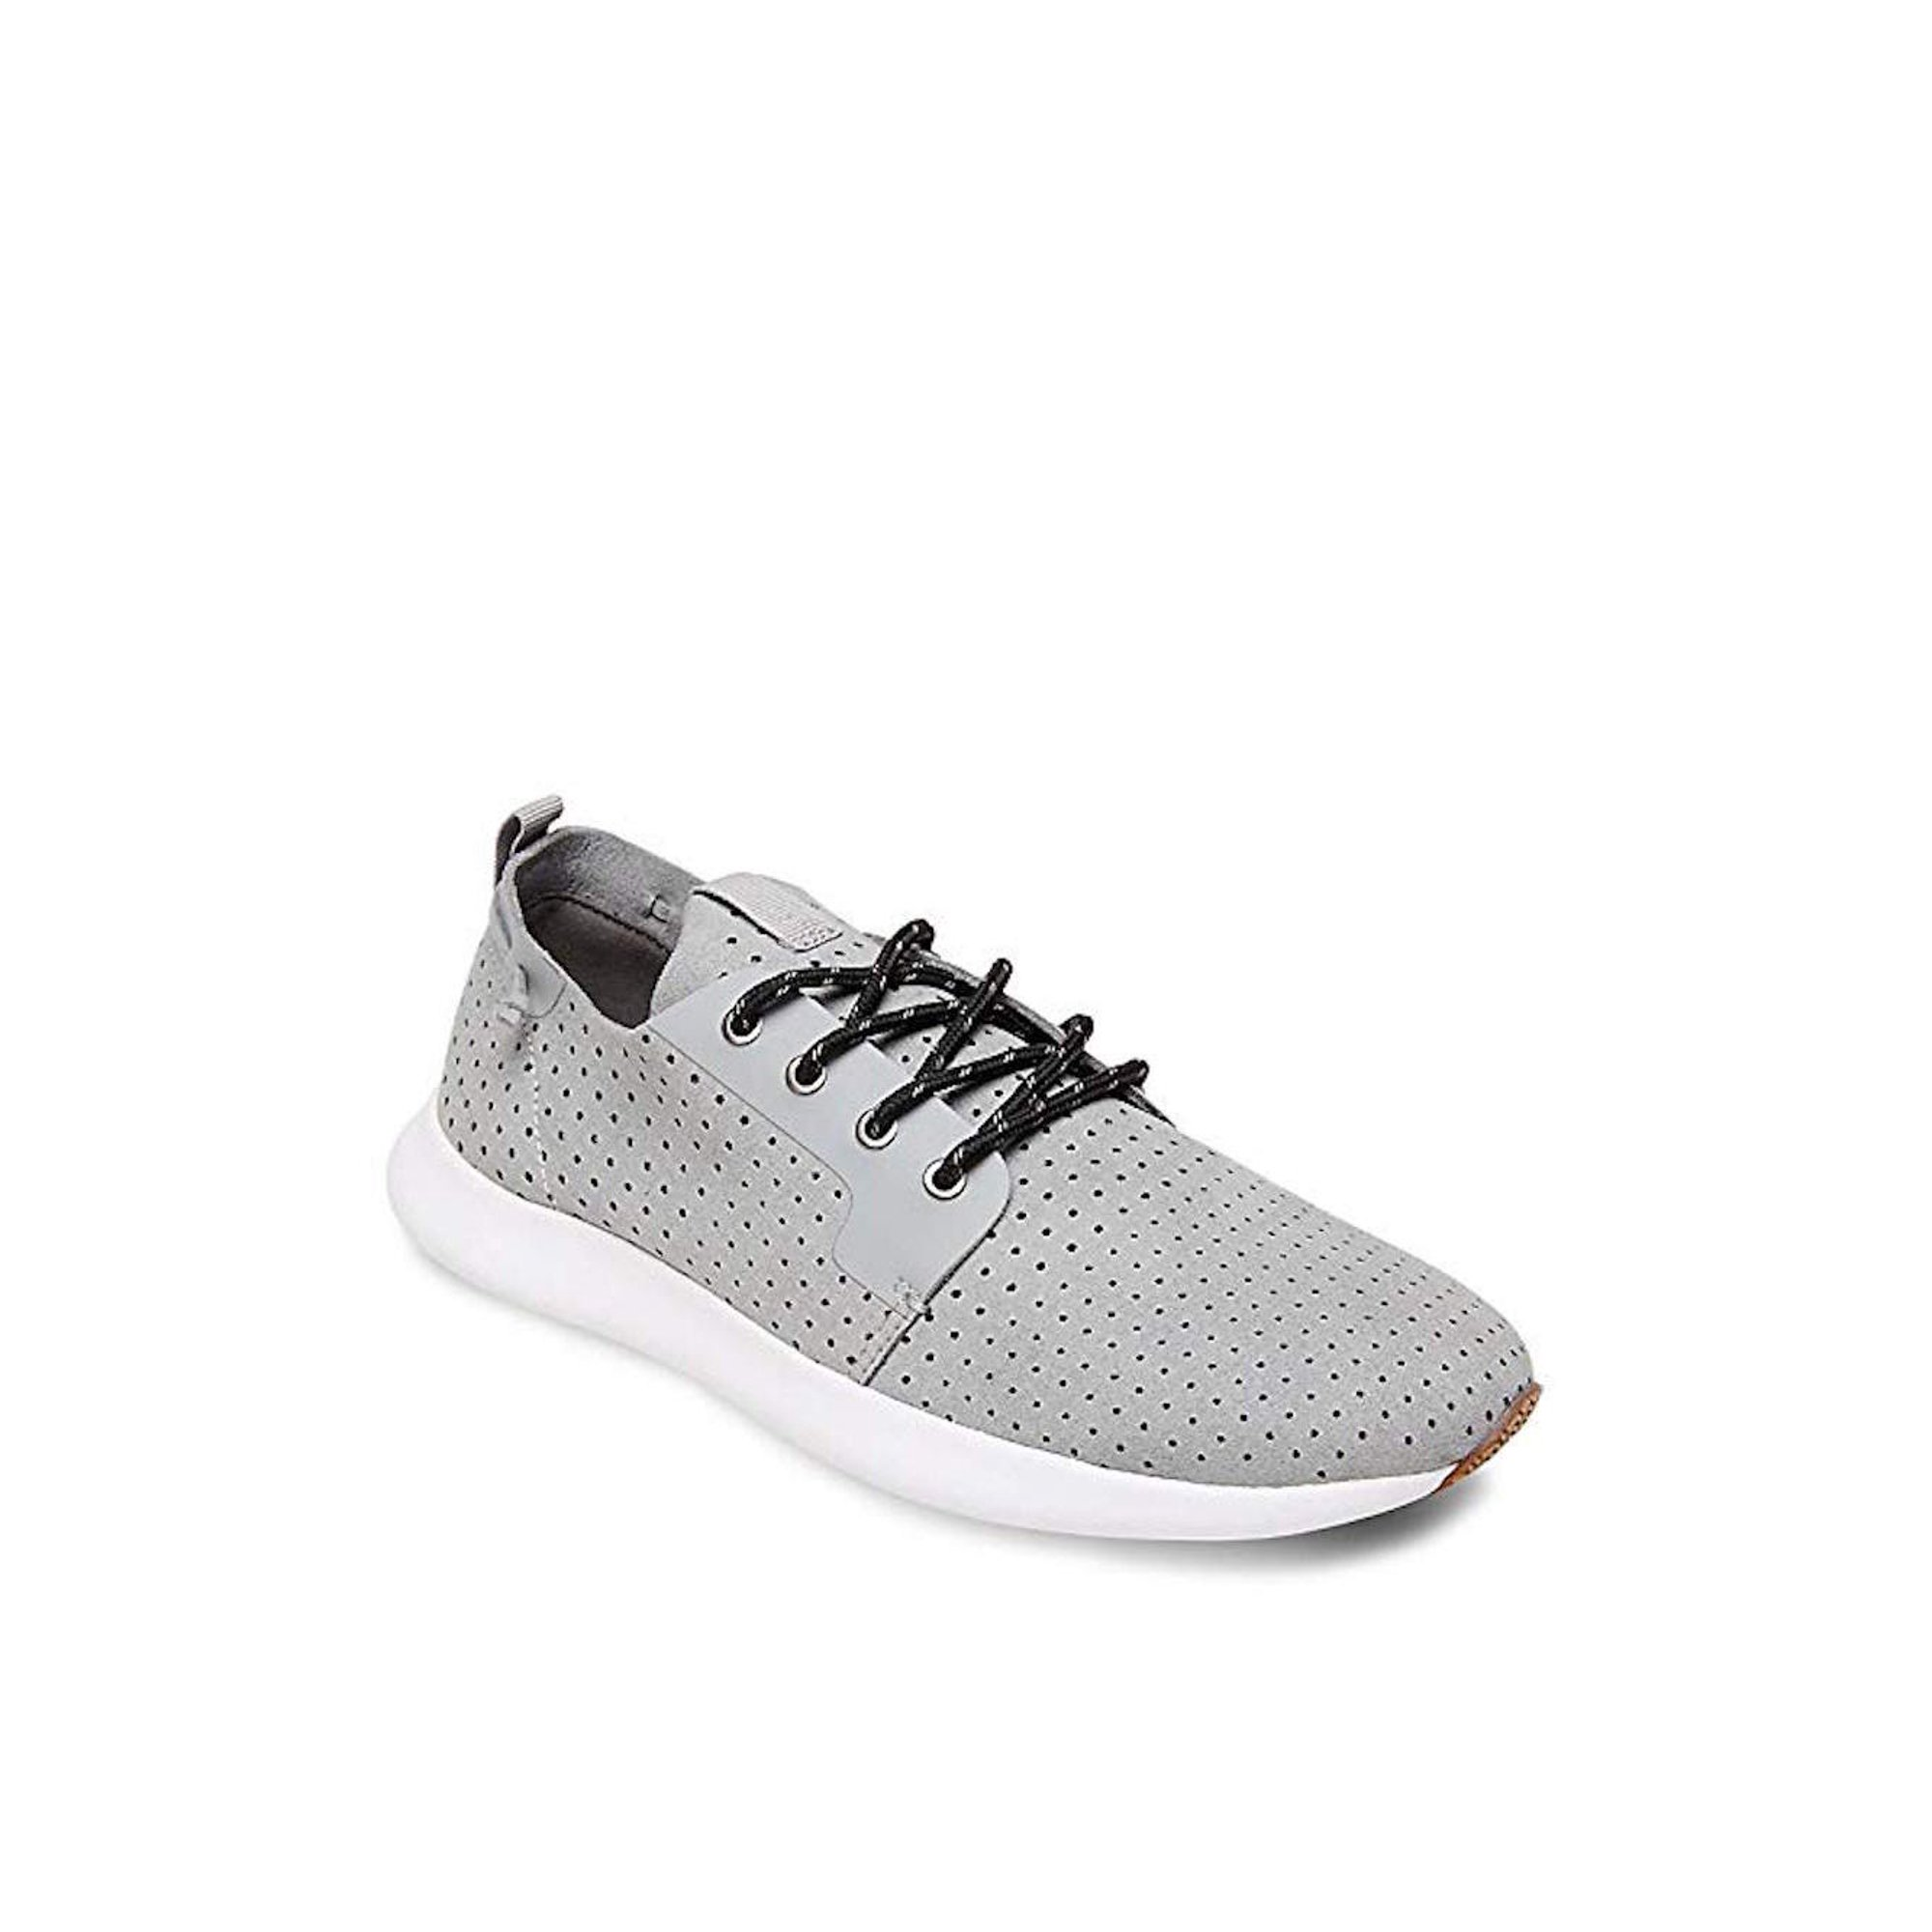 e240c3b929d Steve Madden Mens Brick Low Top Lace Up Fashion Sneakers | Walmart ...